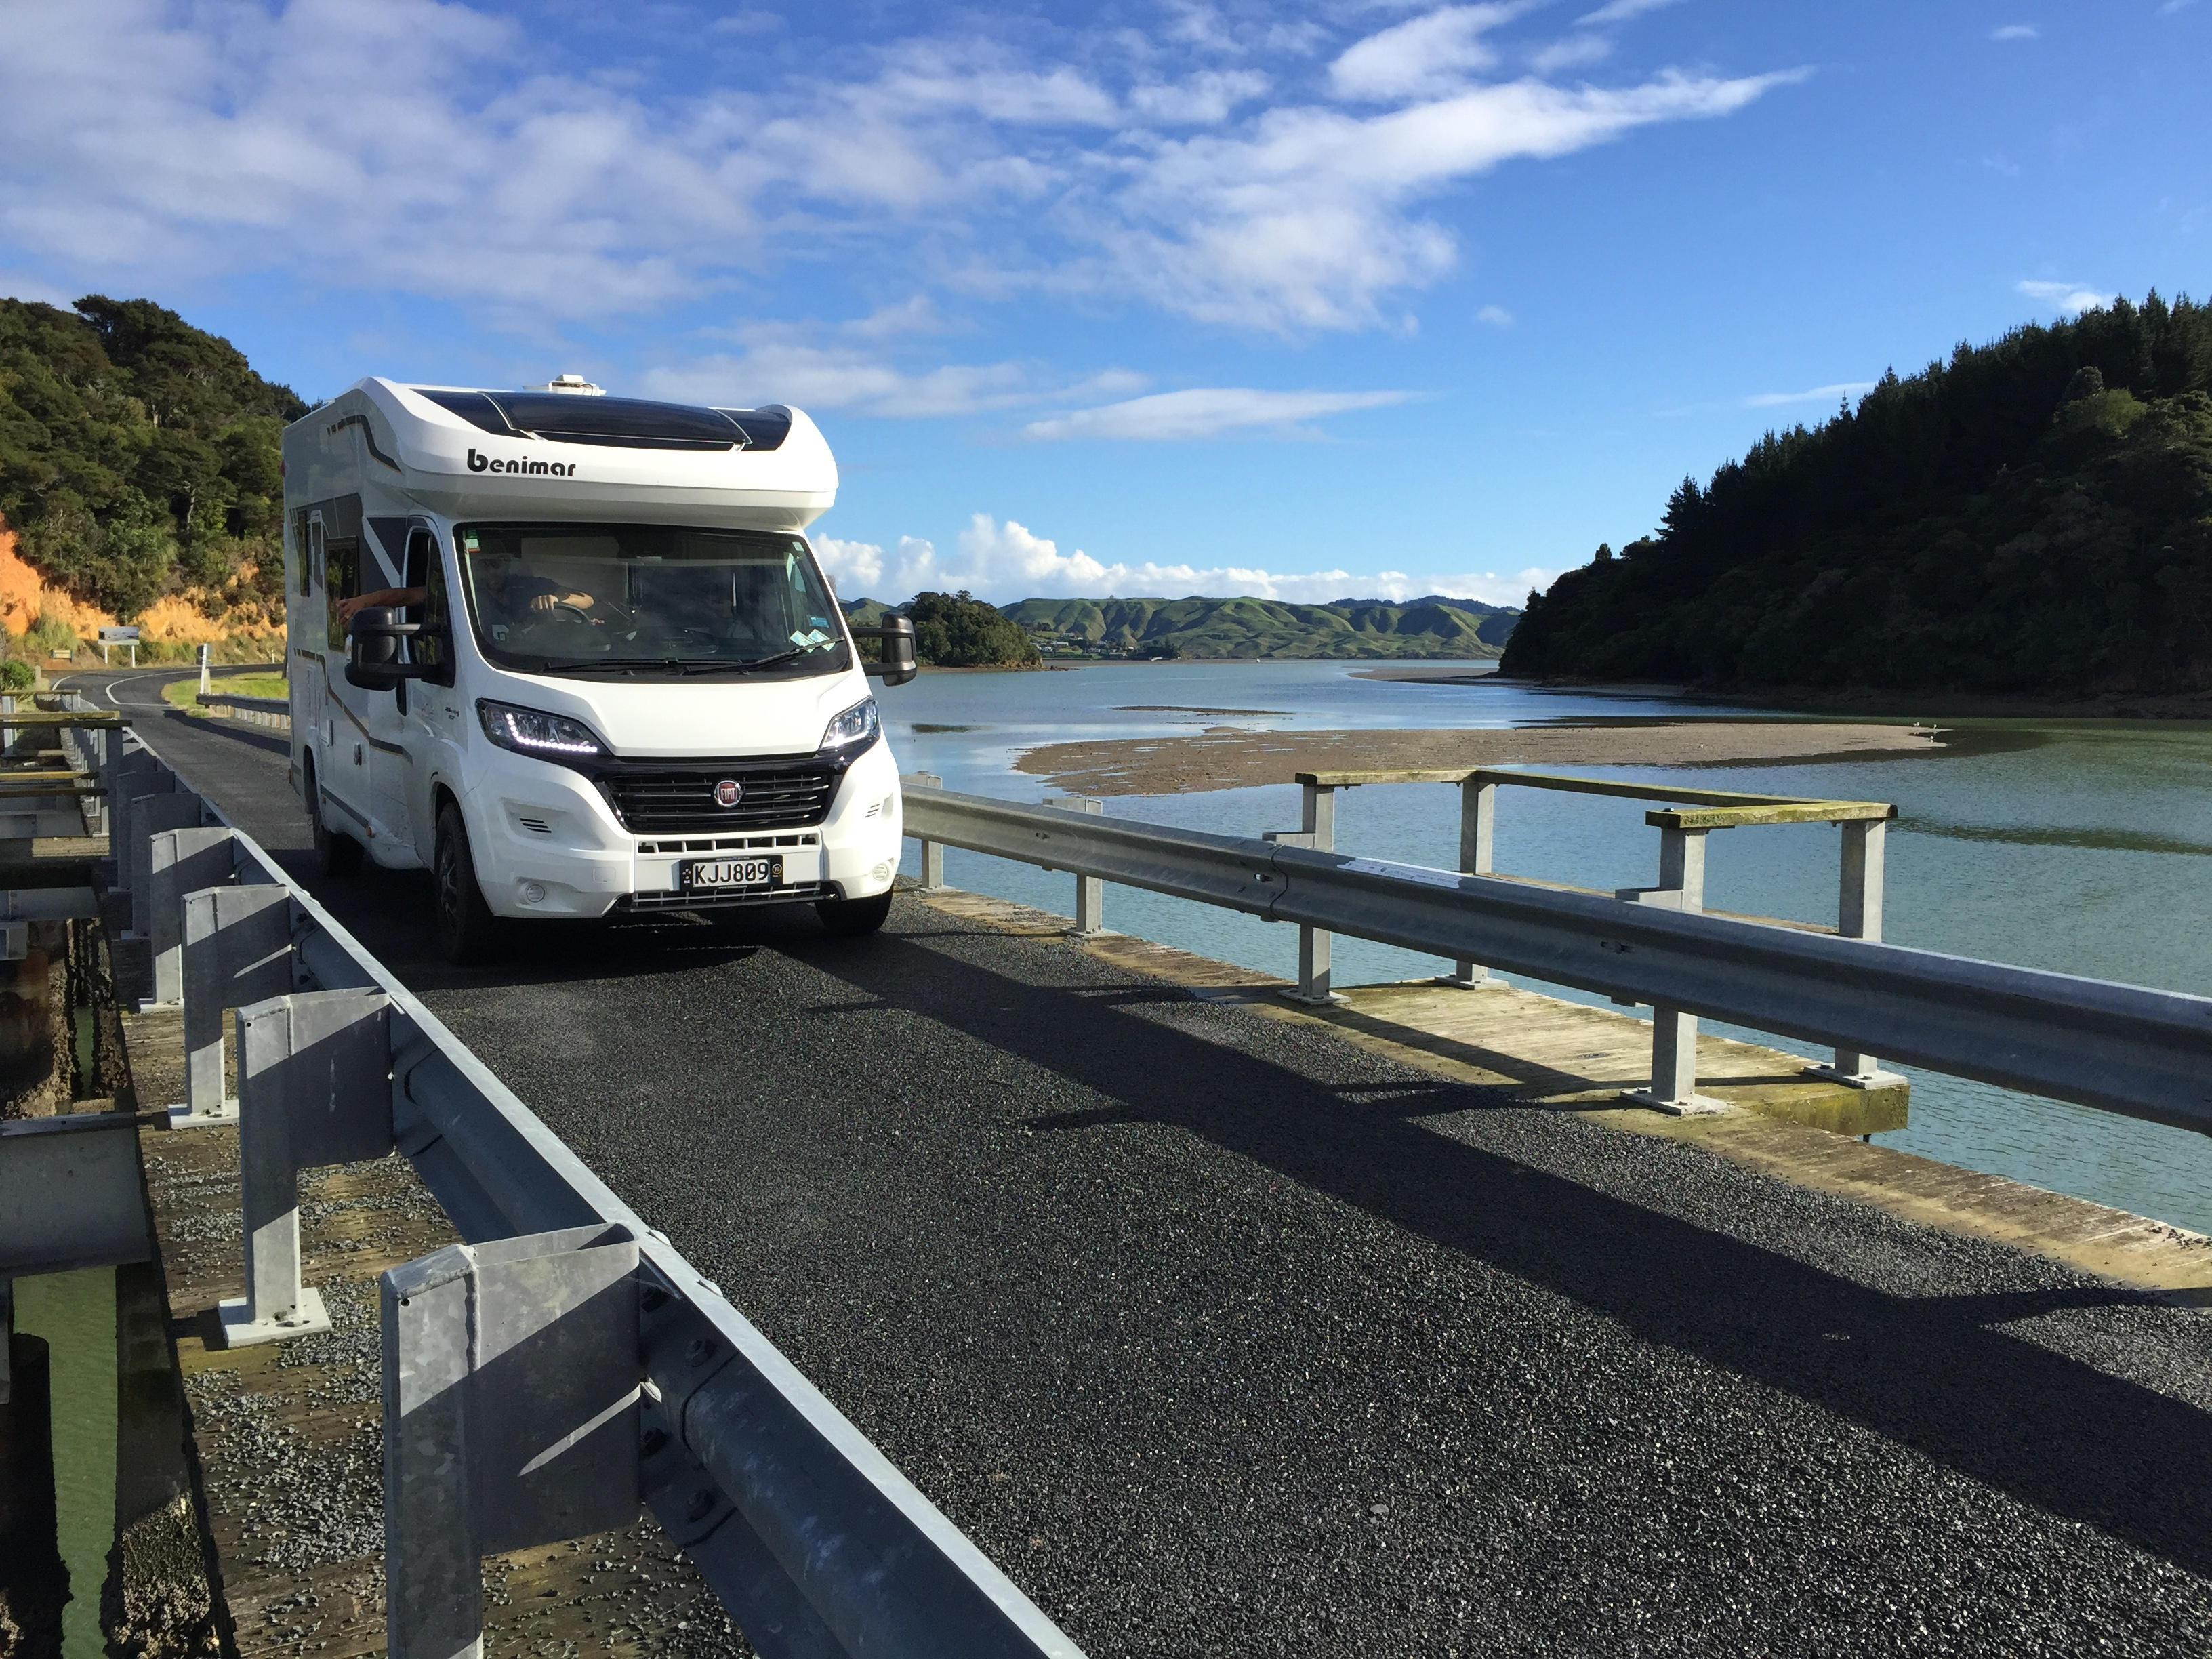 Understanding the basics in motorhome terminology and lingo